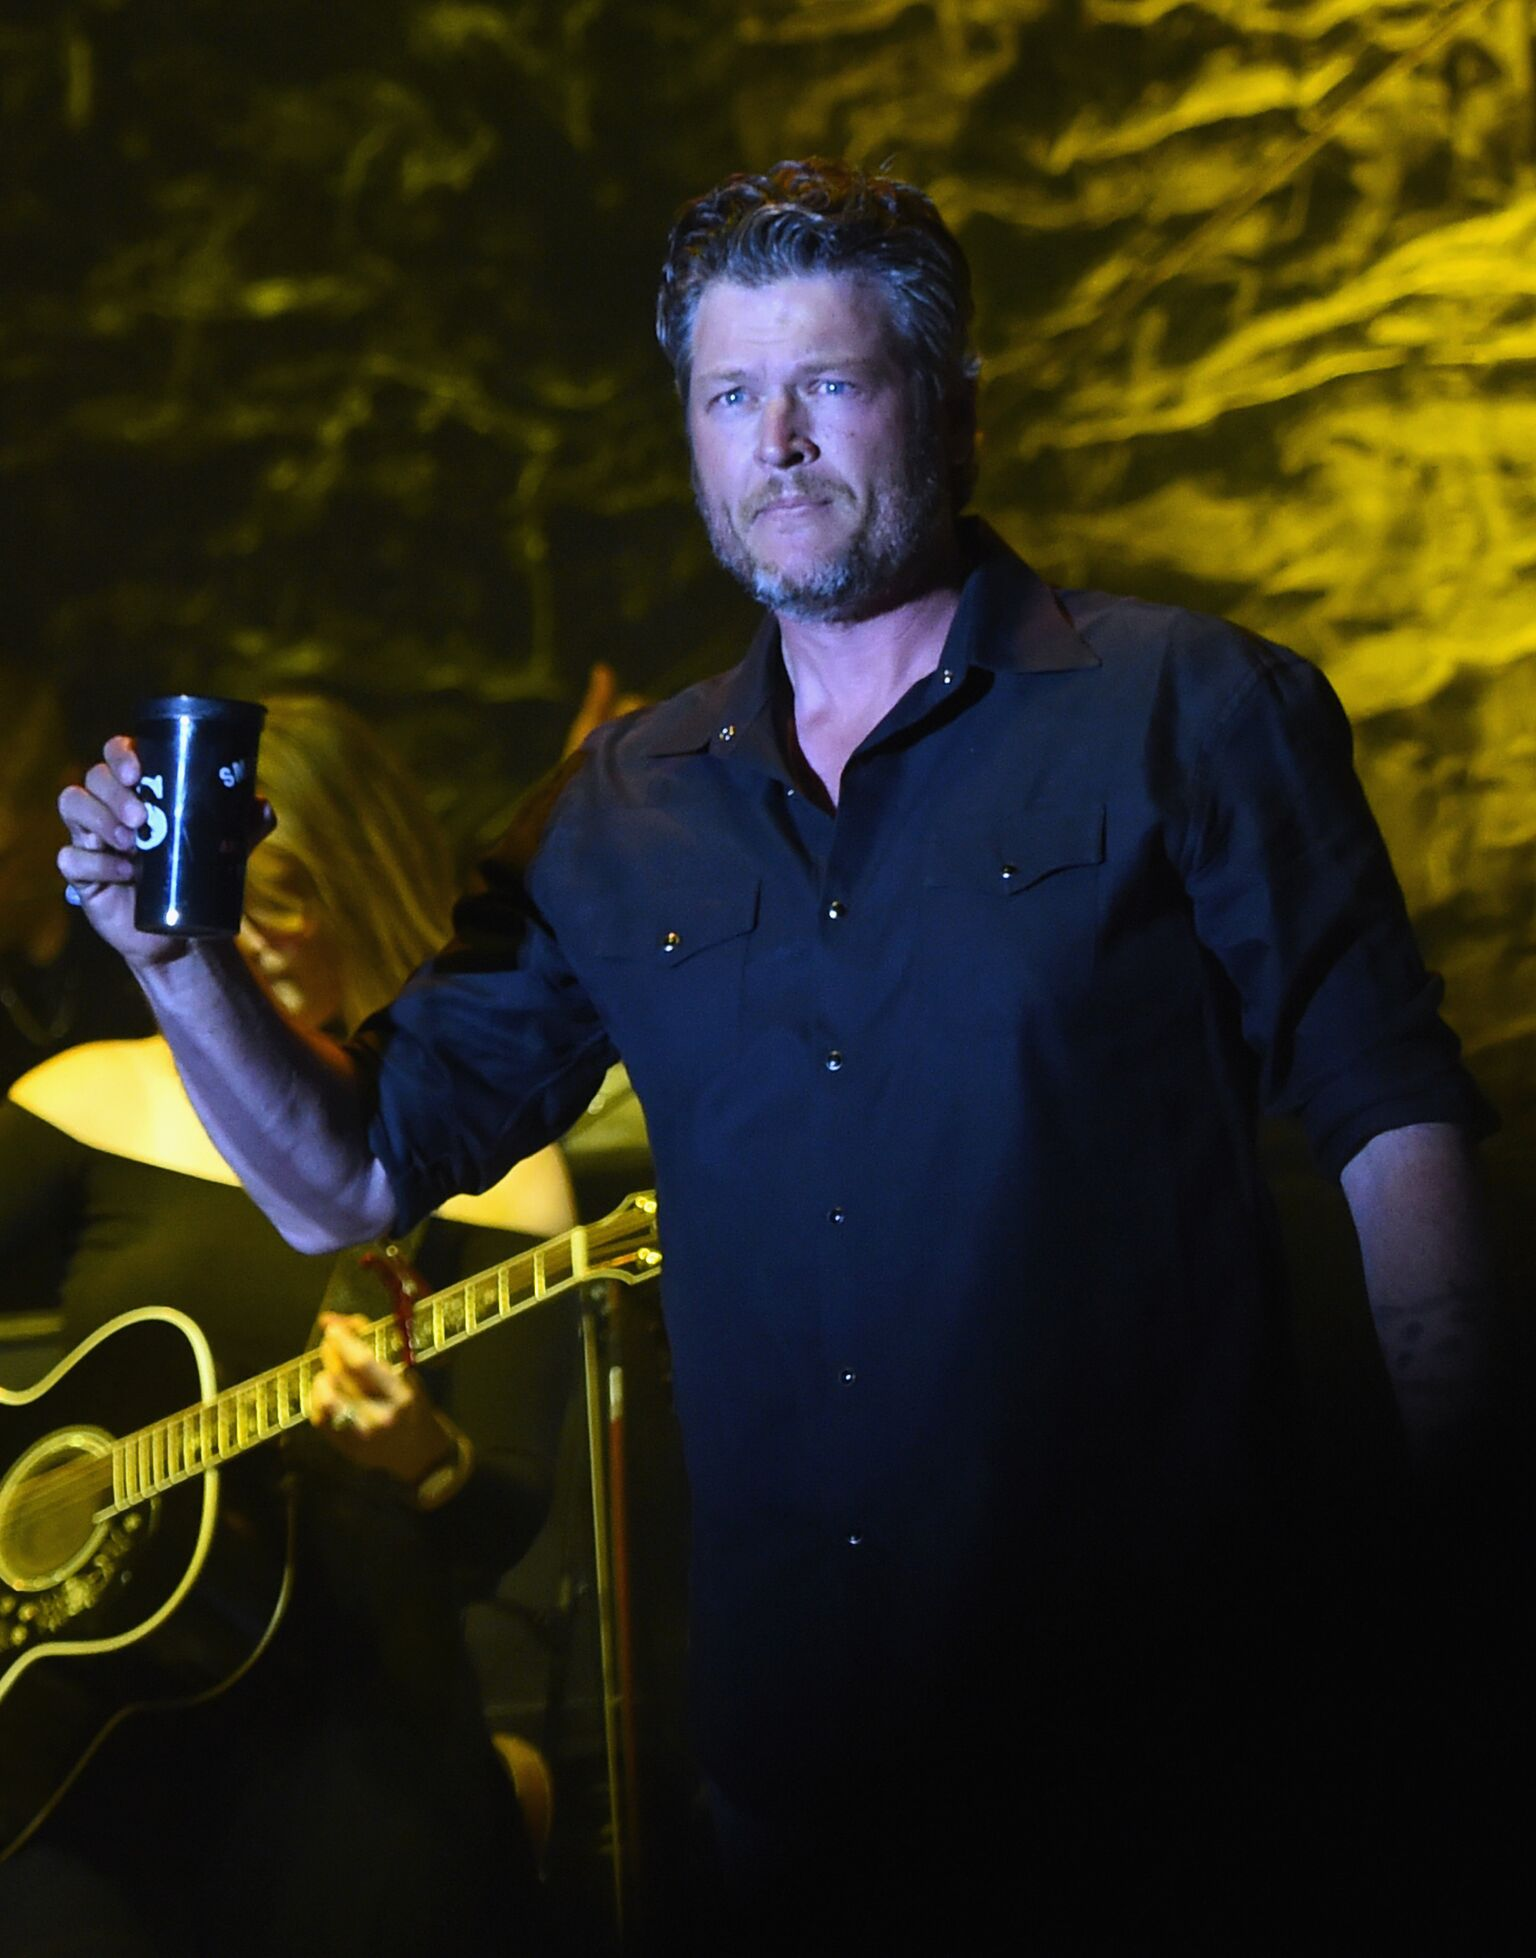 Blake Shelton performs on Day 4 - Country Thunder Music Festival Arizona | Getty Images / Global Images Ukraine